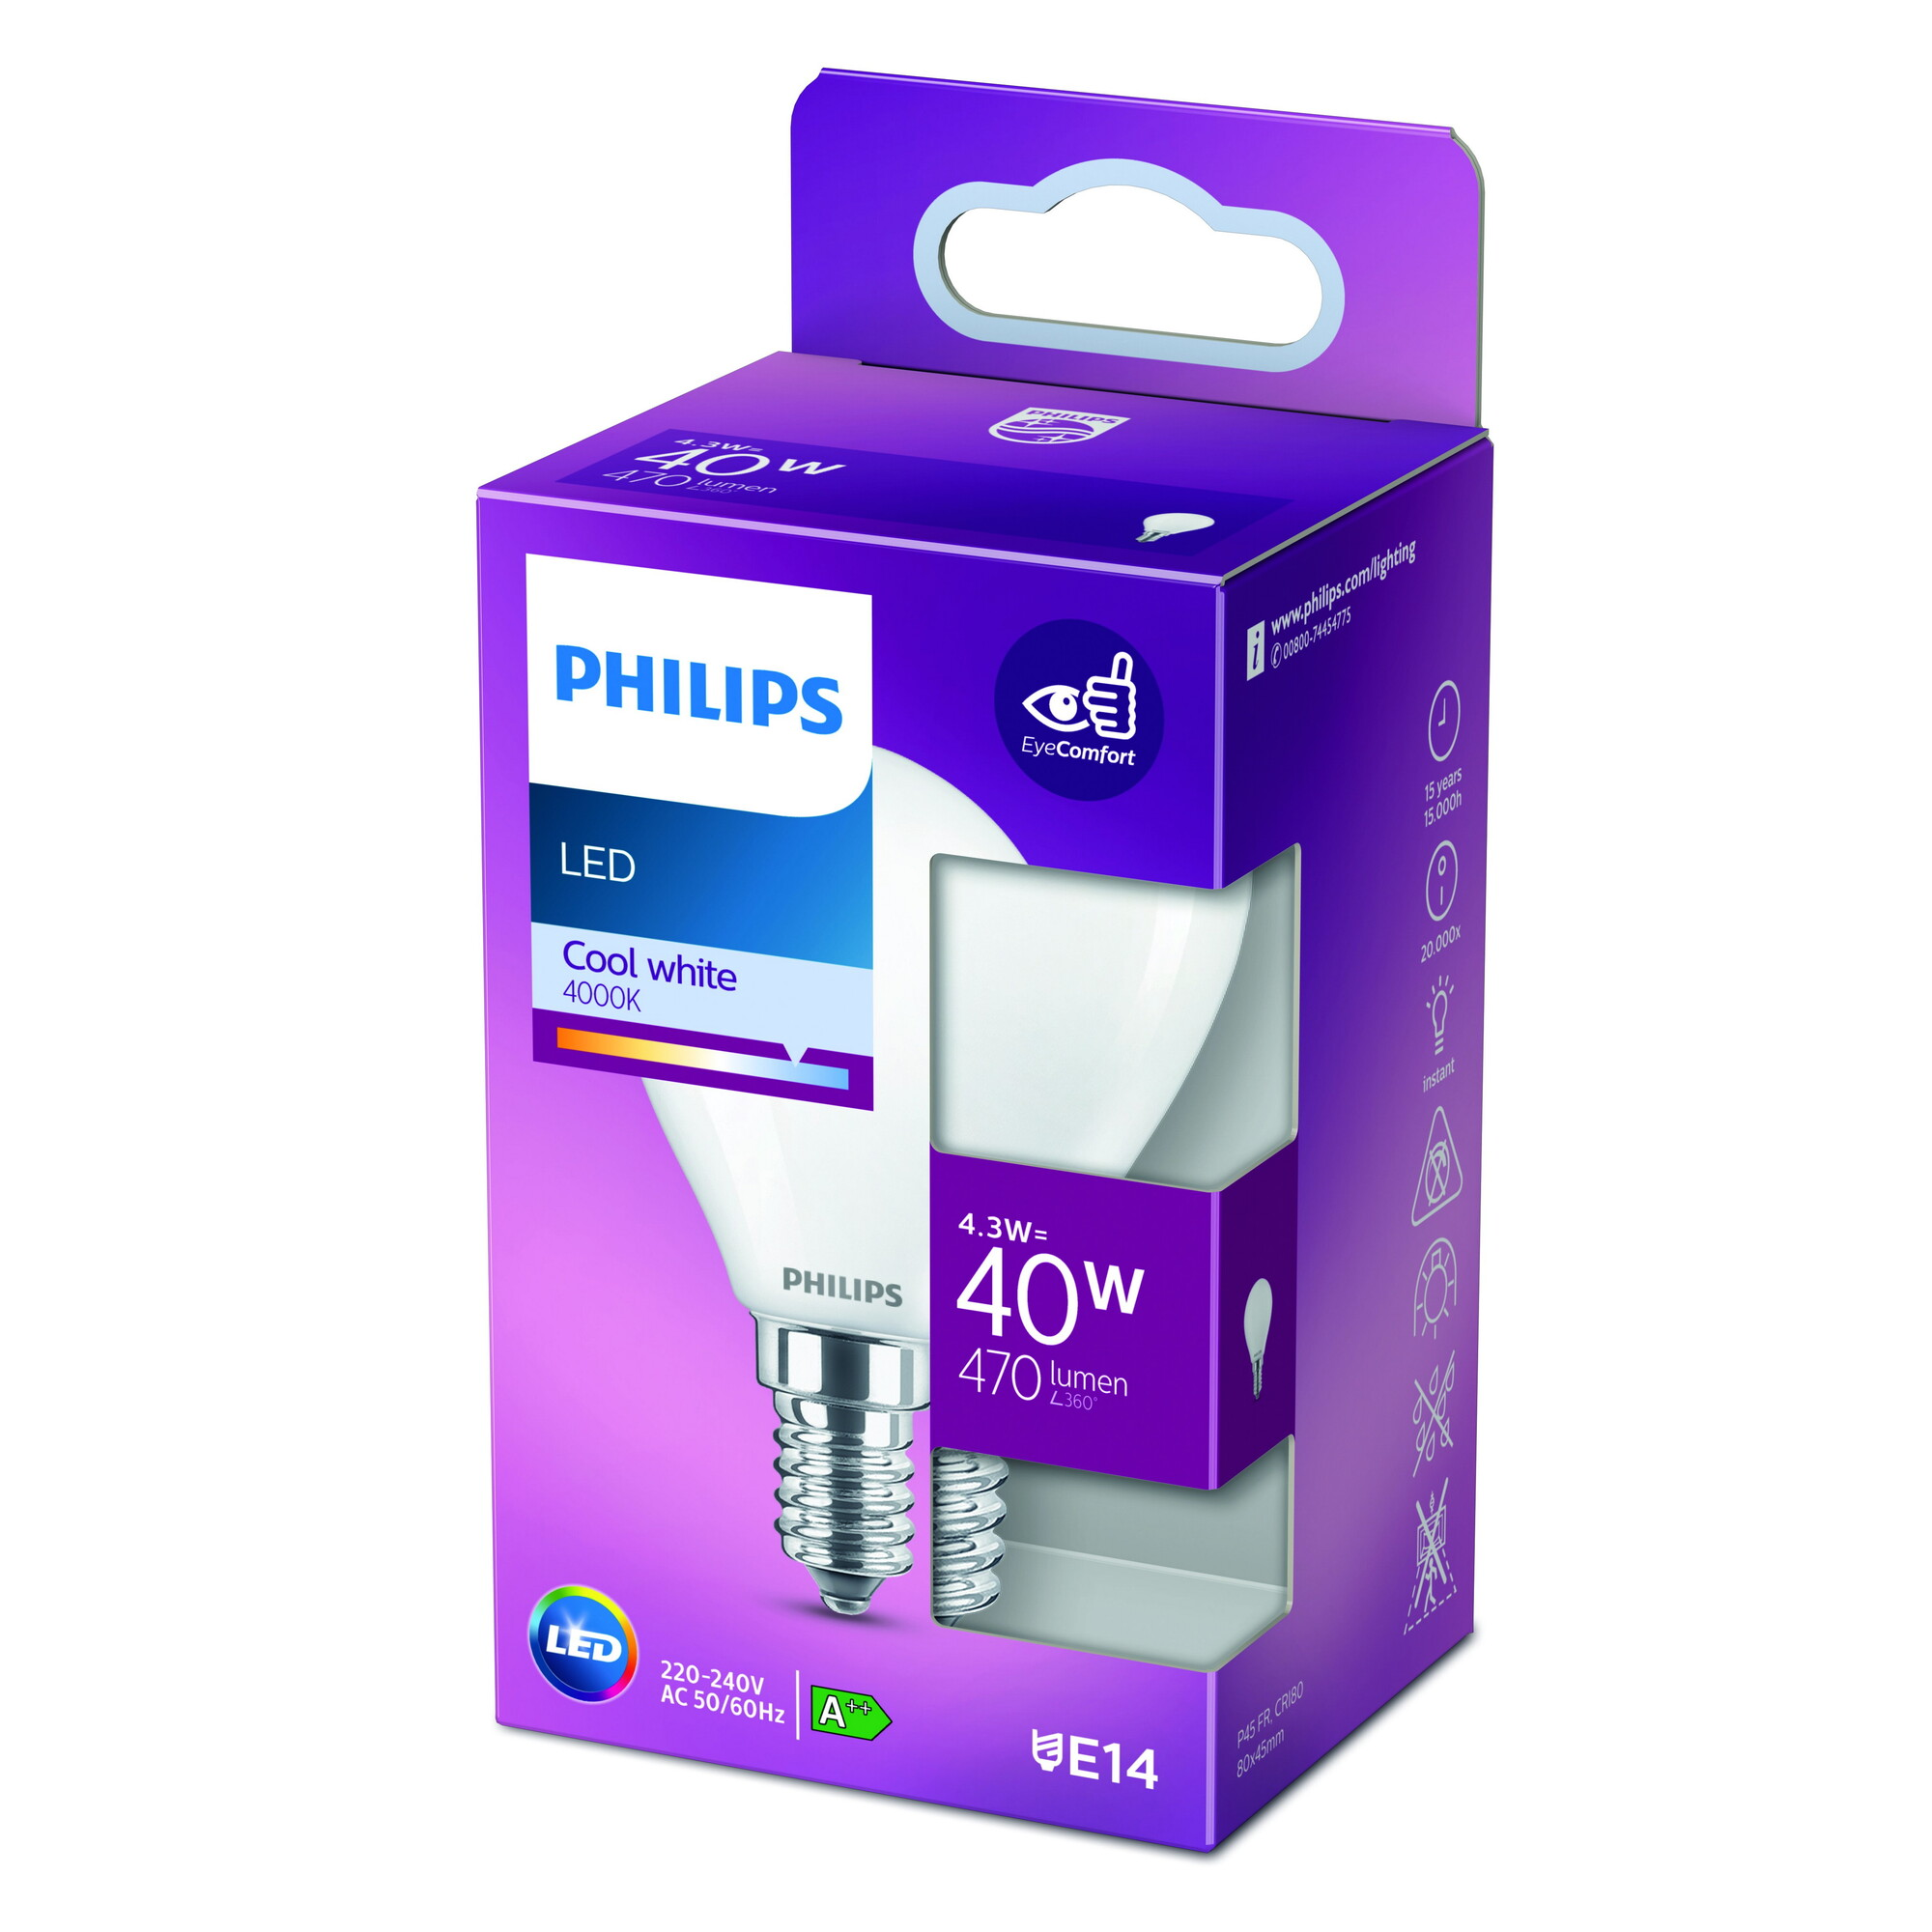 Philips LED classic E14 4,3W 470lm 4000K Kogel Frosted